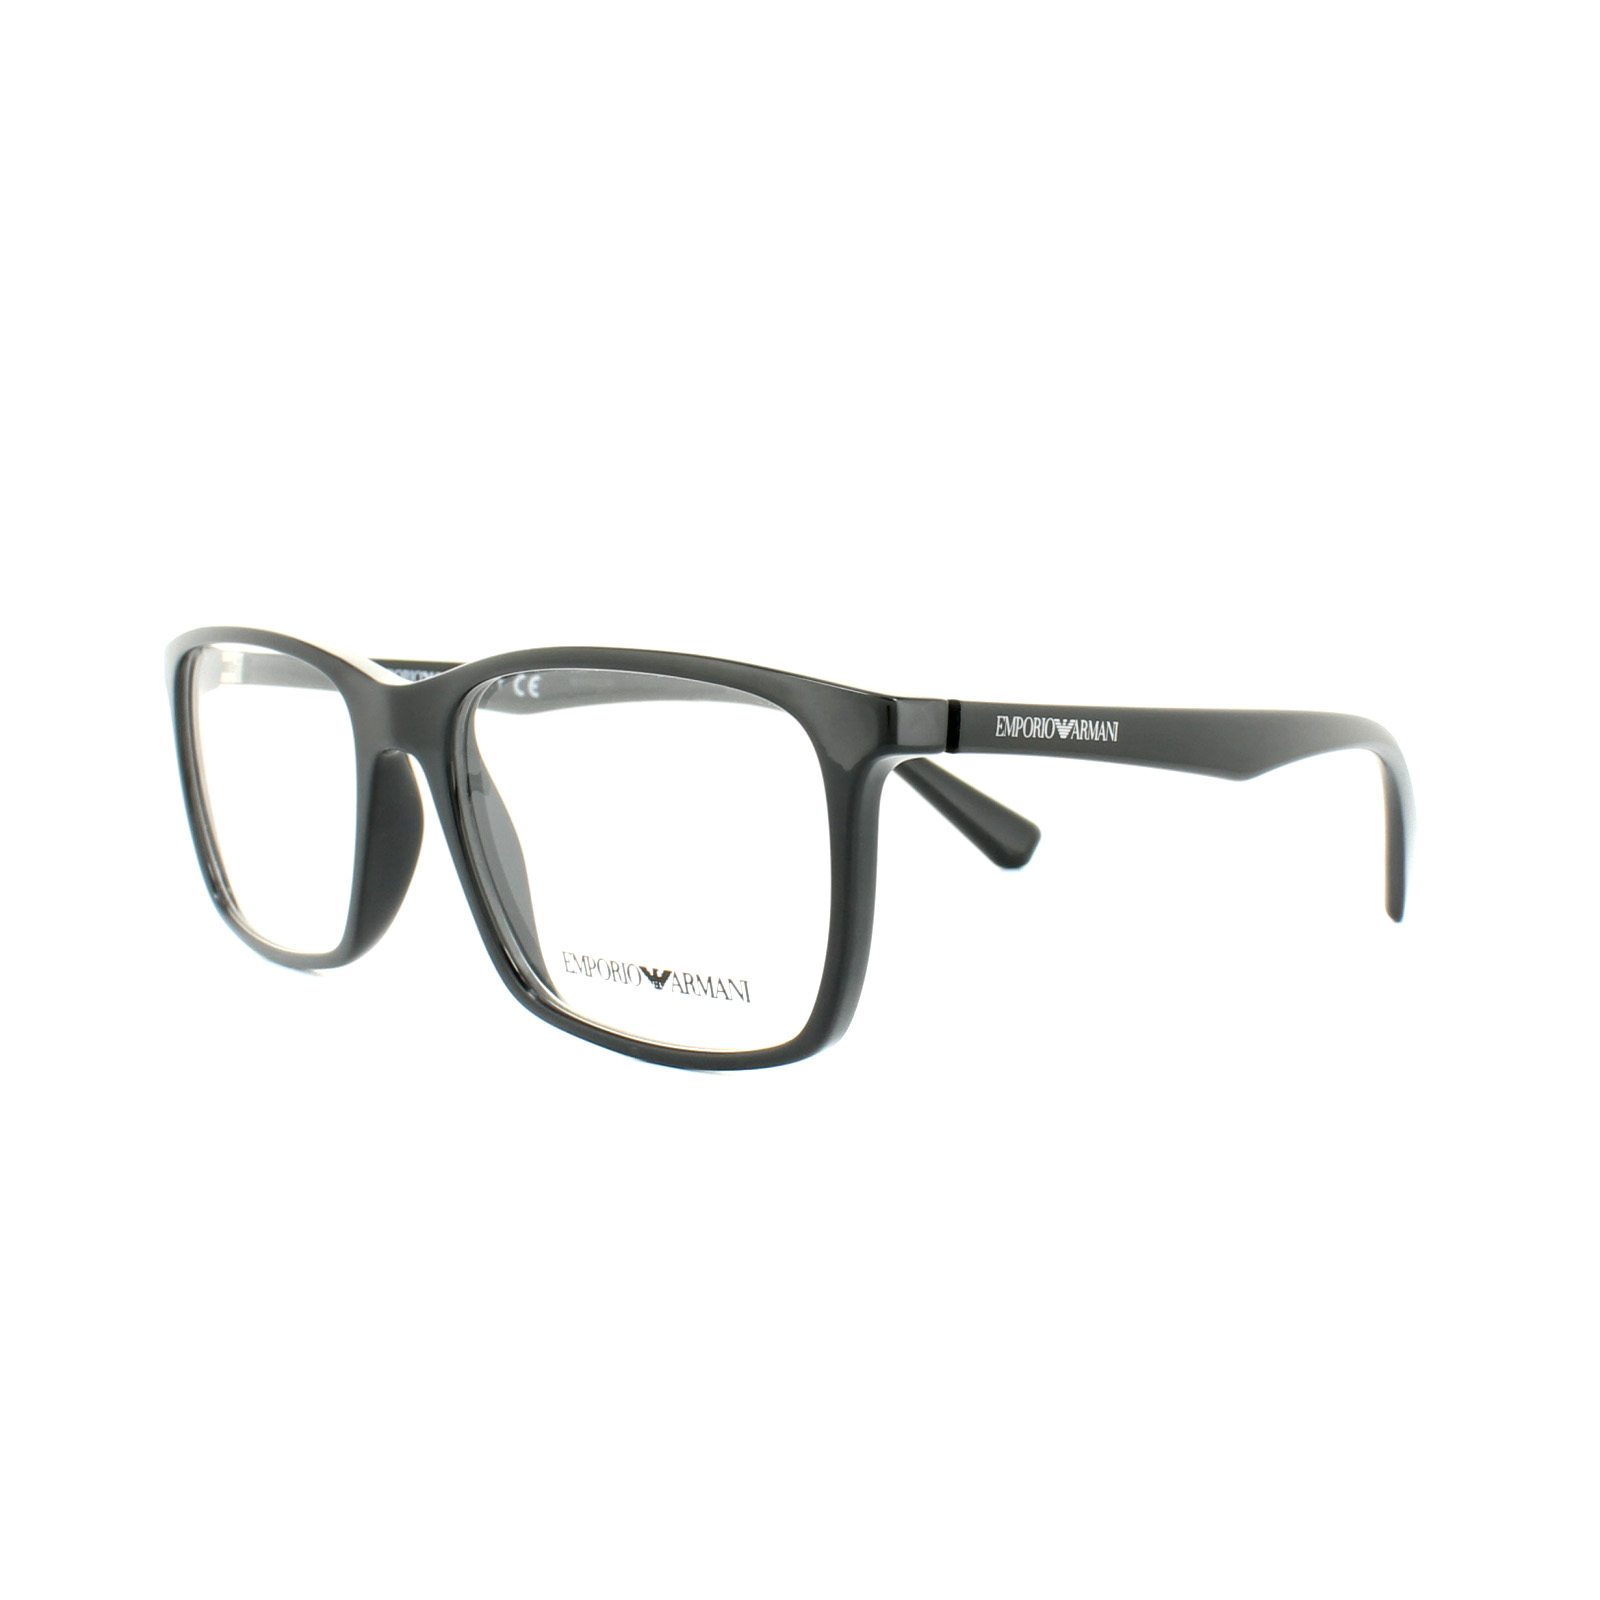 Emporio Armani Glasses Frames EA 3116 5017 Black Mens 53mm ...